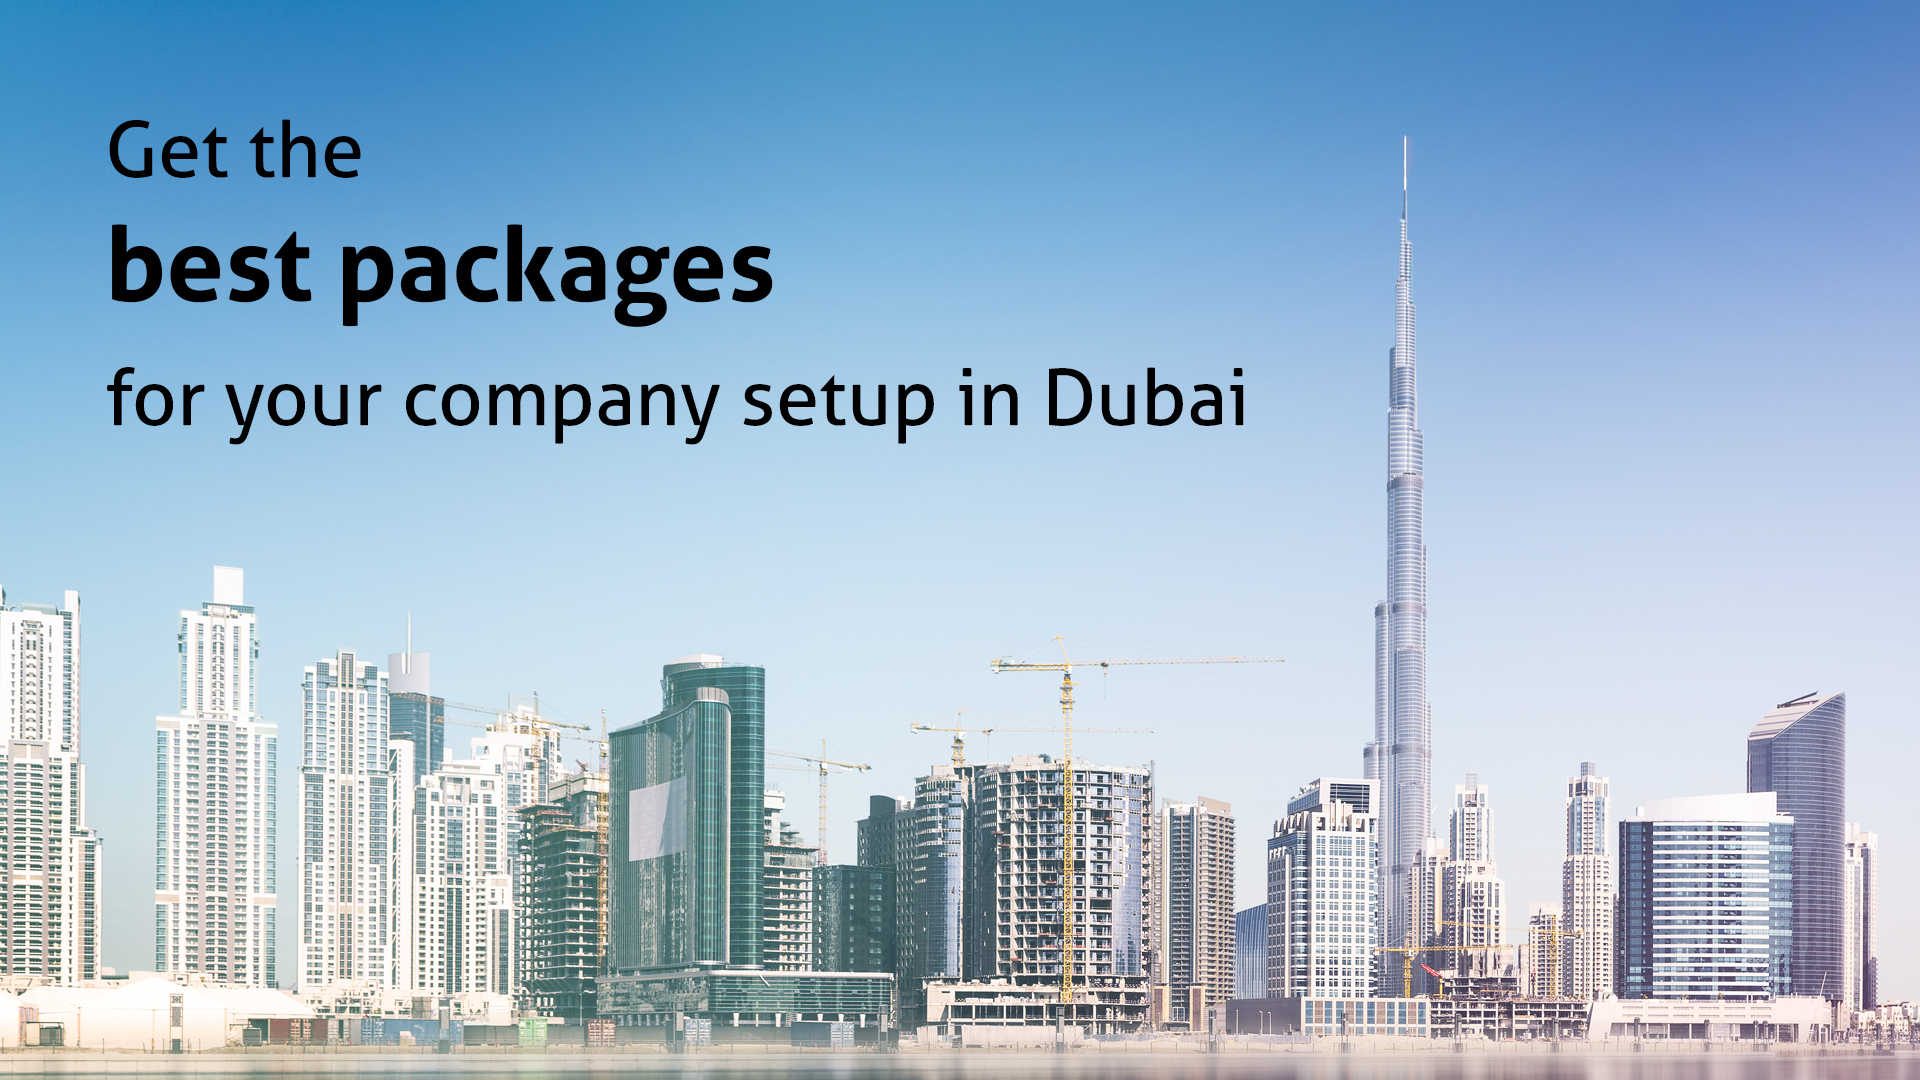 Get the best packages for your company setup in Dubai